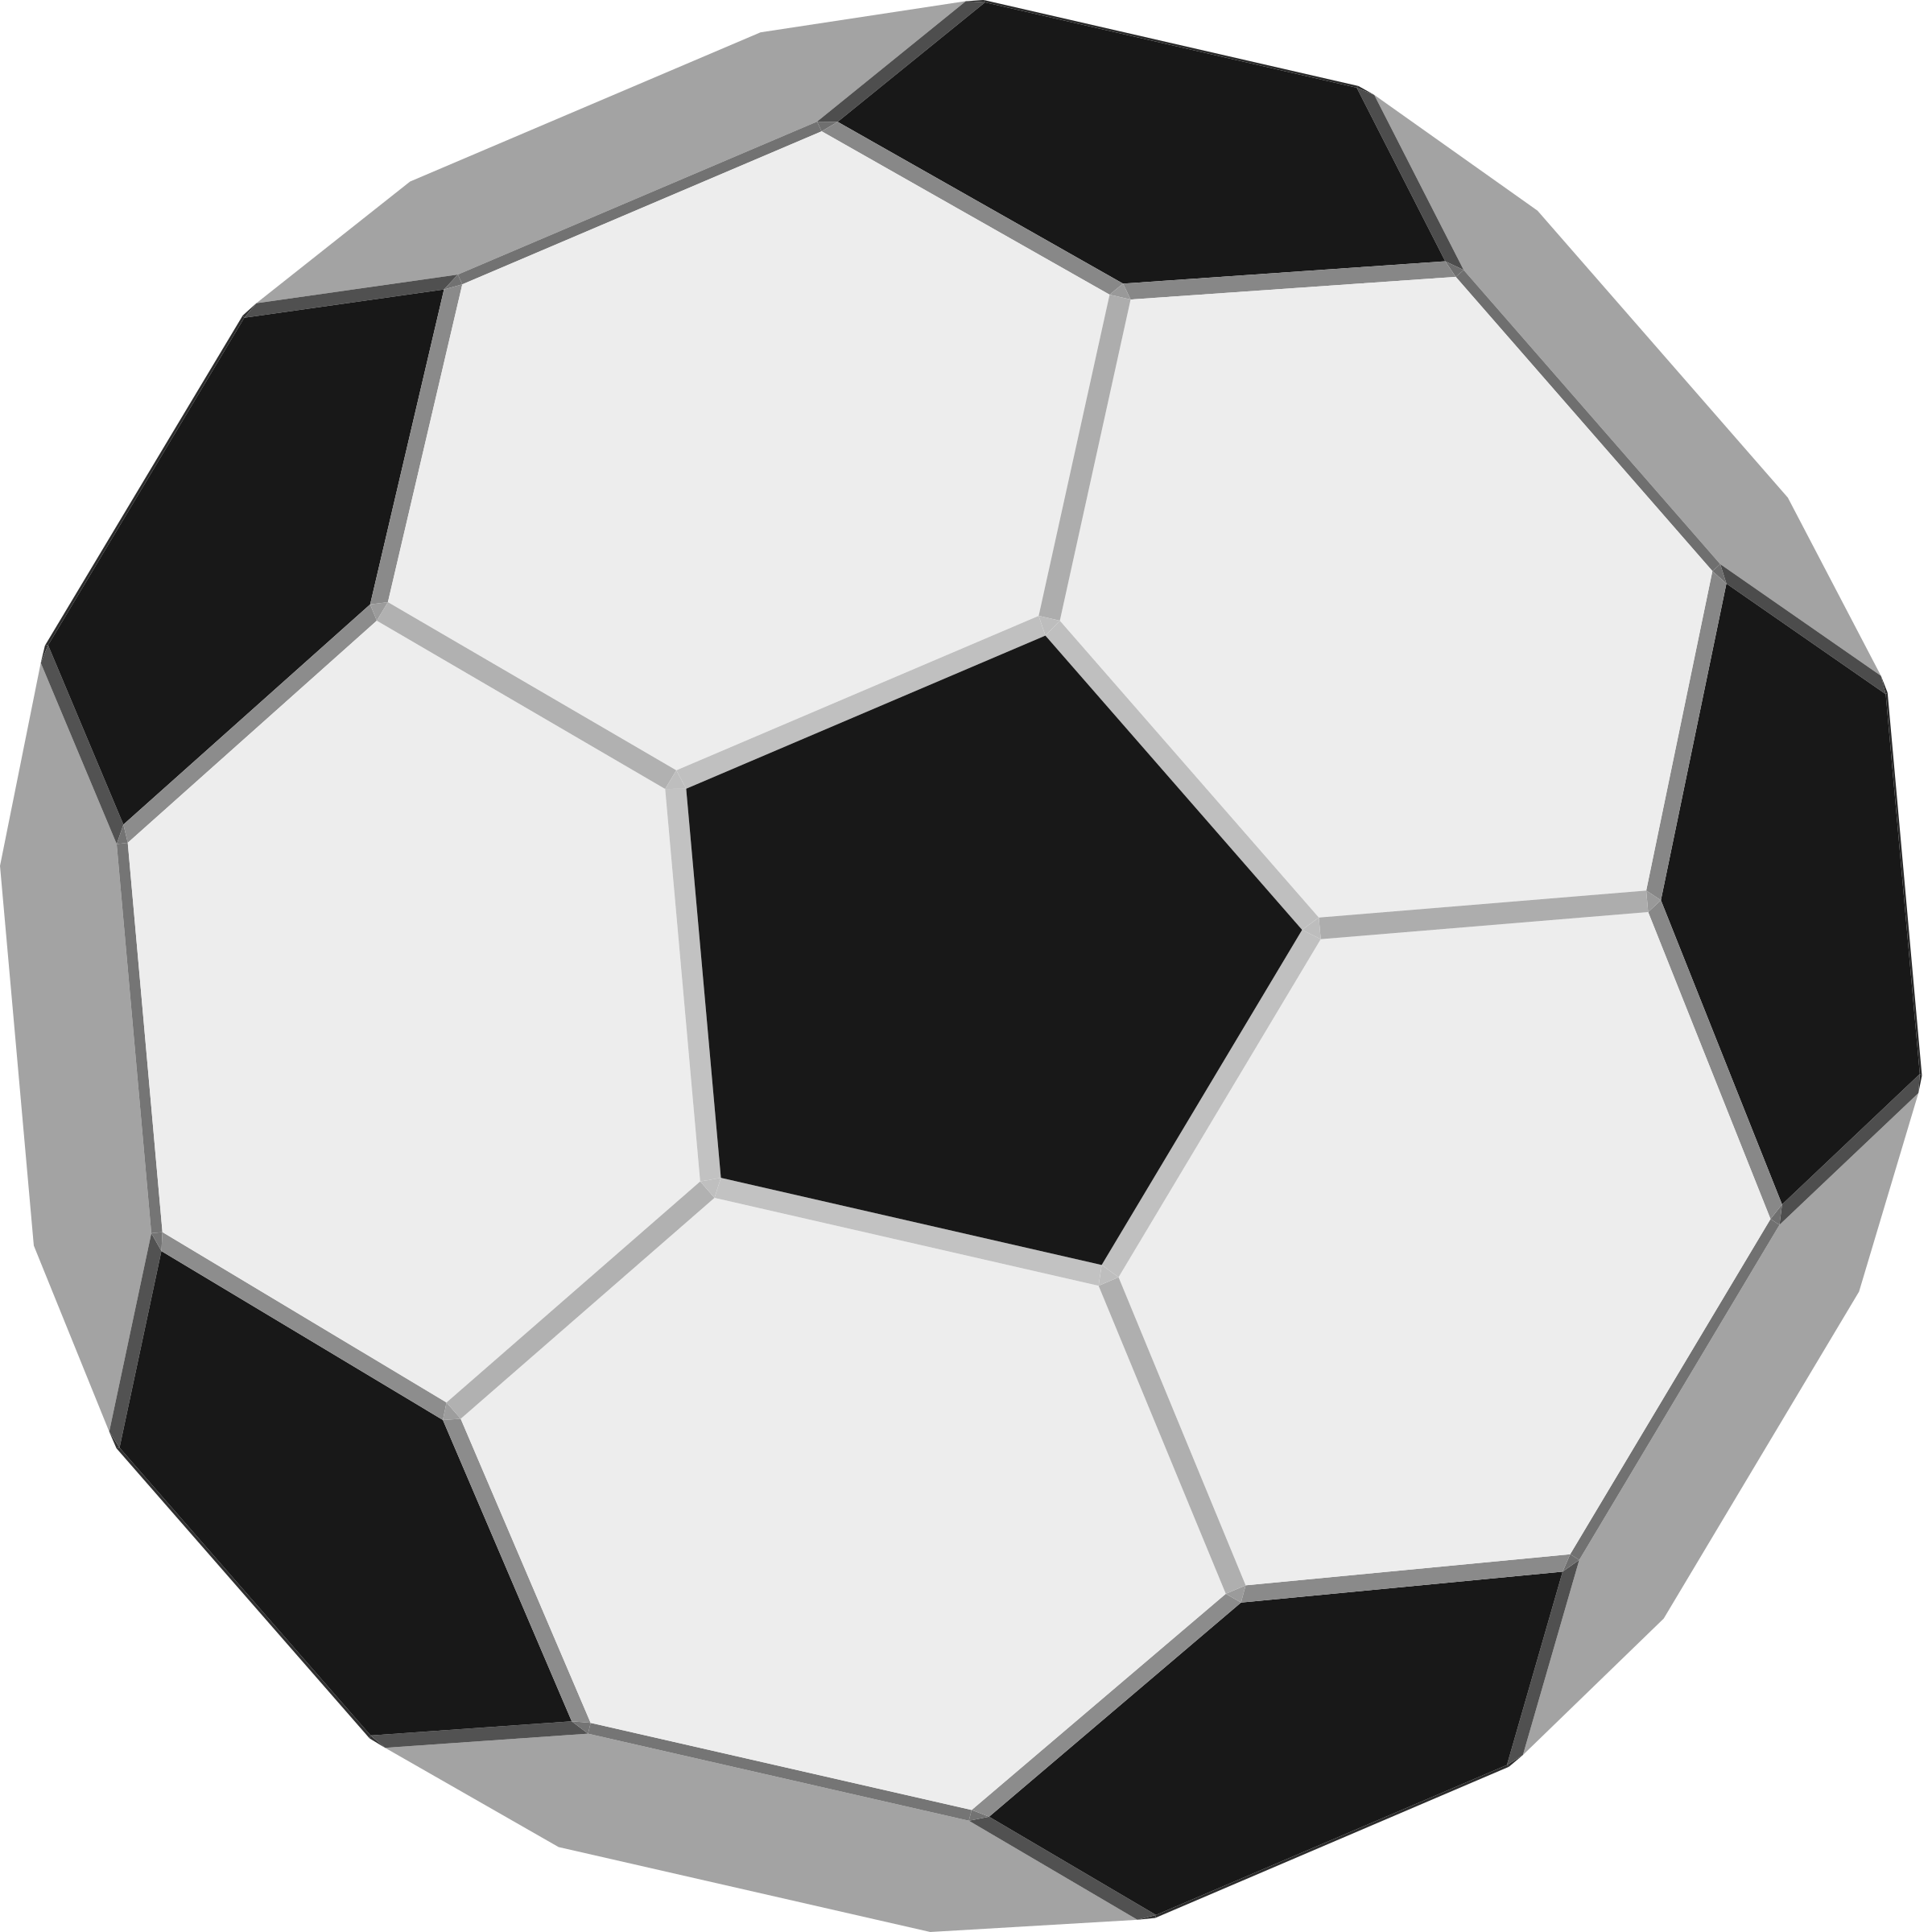 Soccer ball clipart simple. Free easy football cliparts